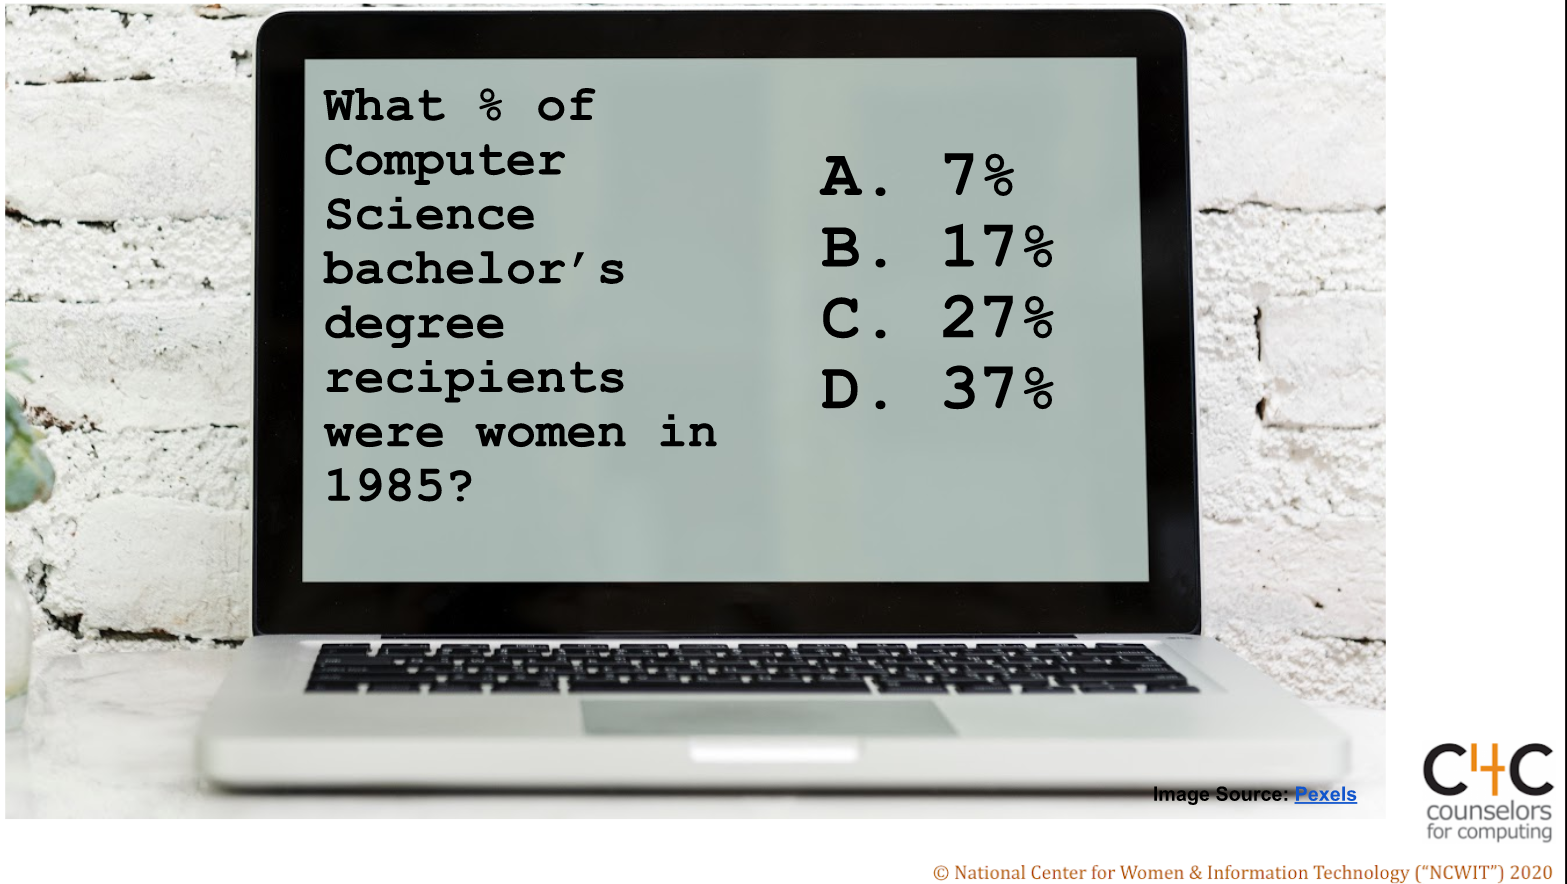 What % of Computer Science bachelor's degree recipients were women in 1985?